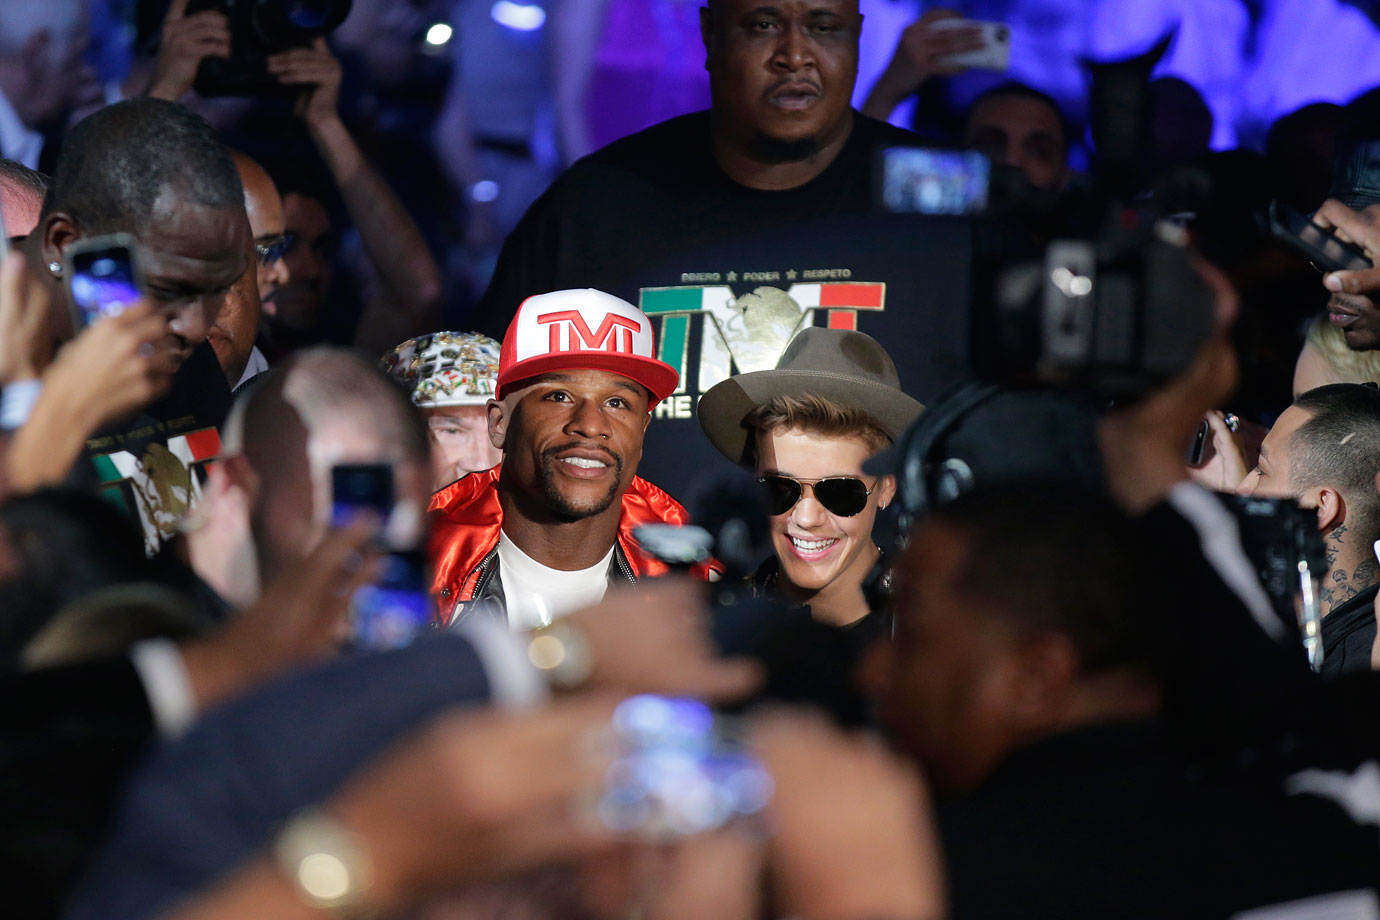 Floyd Mayweather Jr. is joined by Justin Bieber celebrate as he heads to the ring for his WBC/WBA welterweight unification fight against Marcos Maidana on May 3, 2014 at the MGM Grand Garden Arena in Las Vegas.